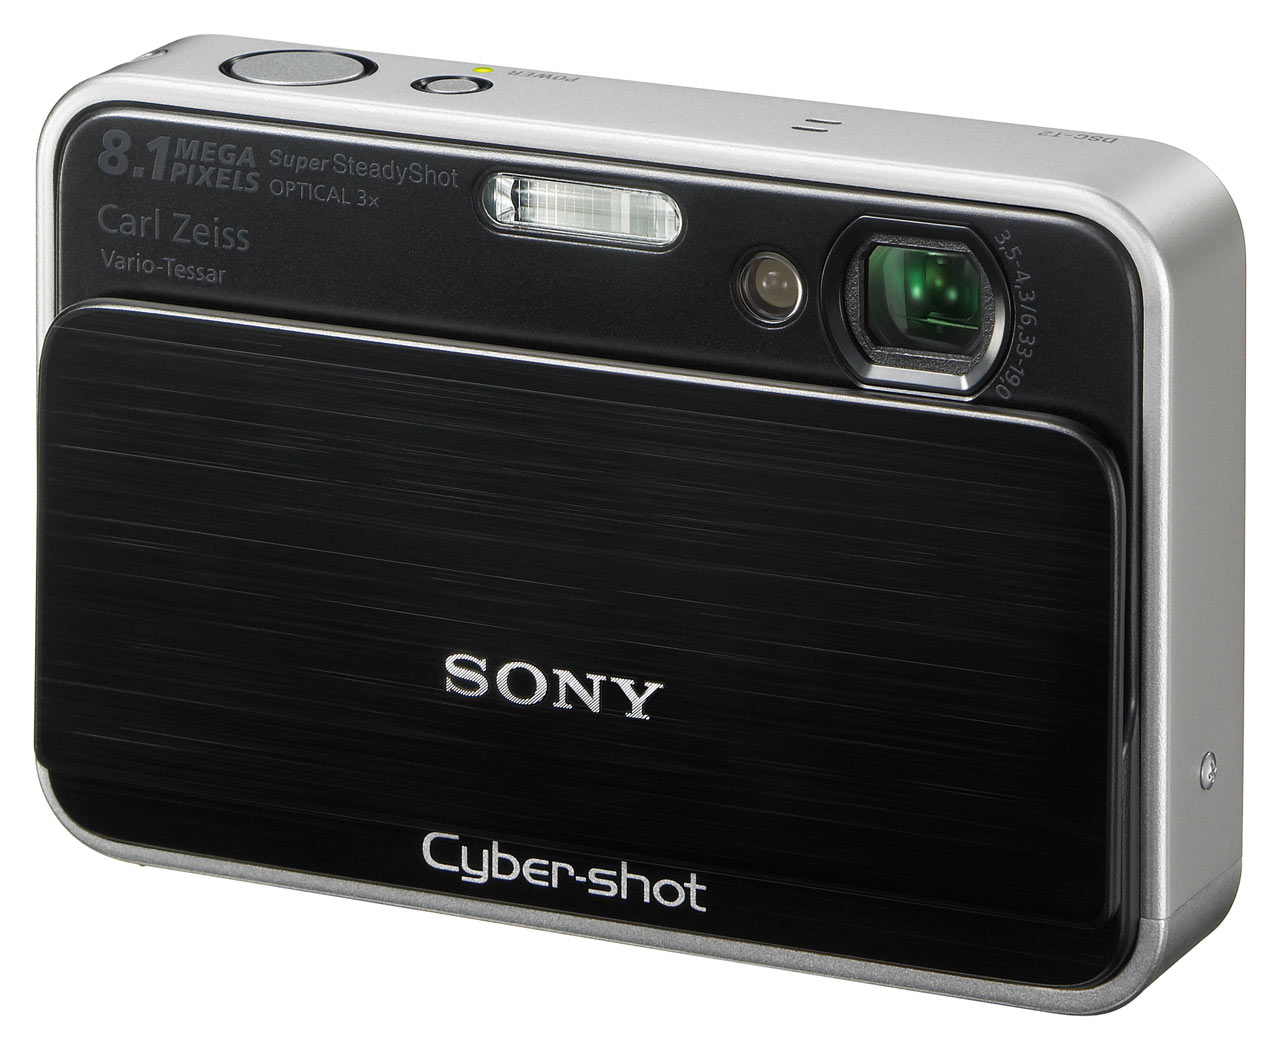 SONYS LATEST CAMERA HOLDS A WHOPPING 40000 PHOTOS